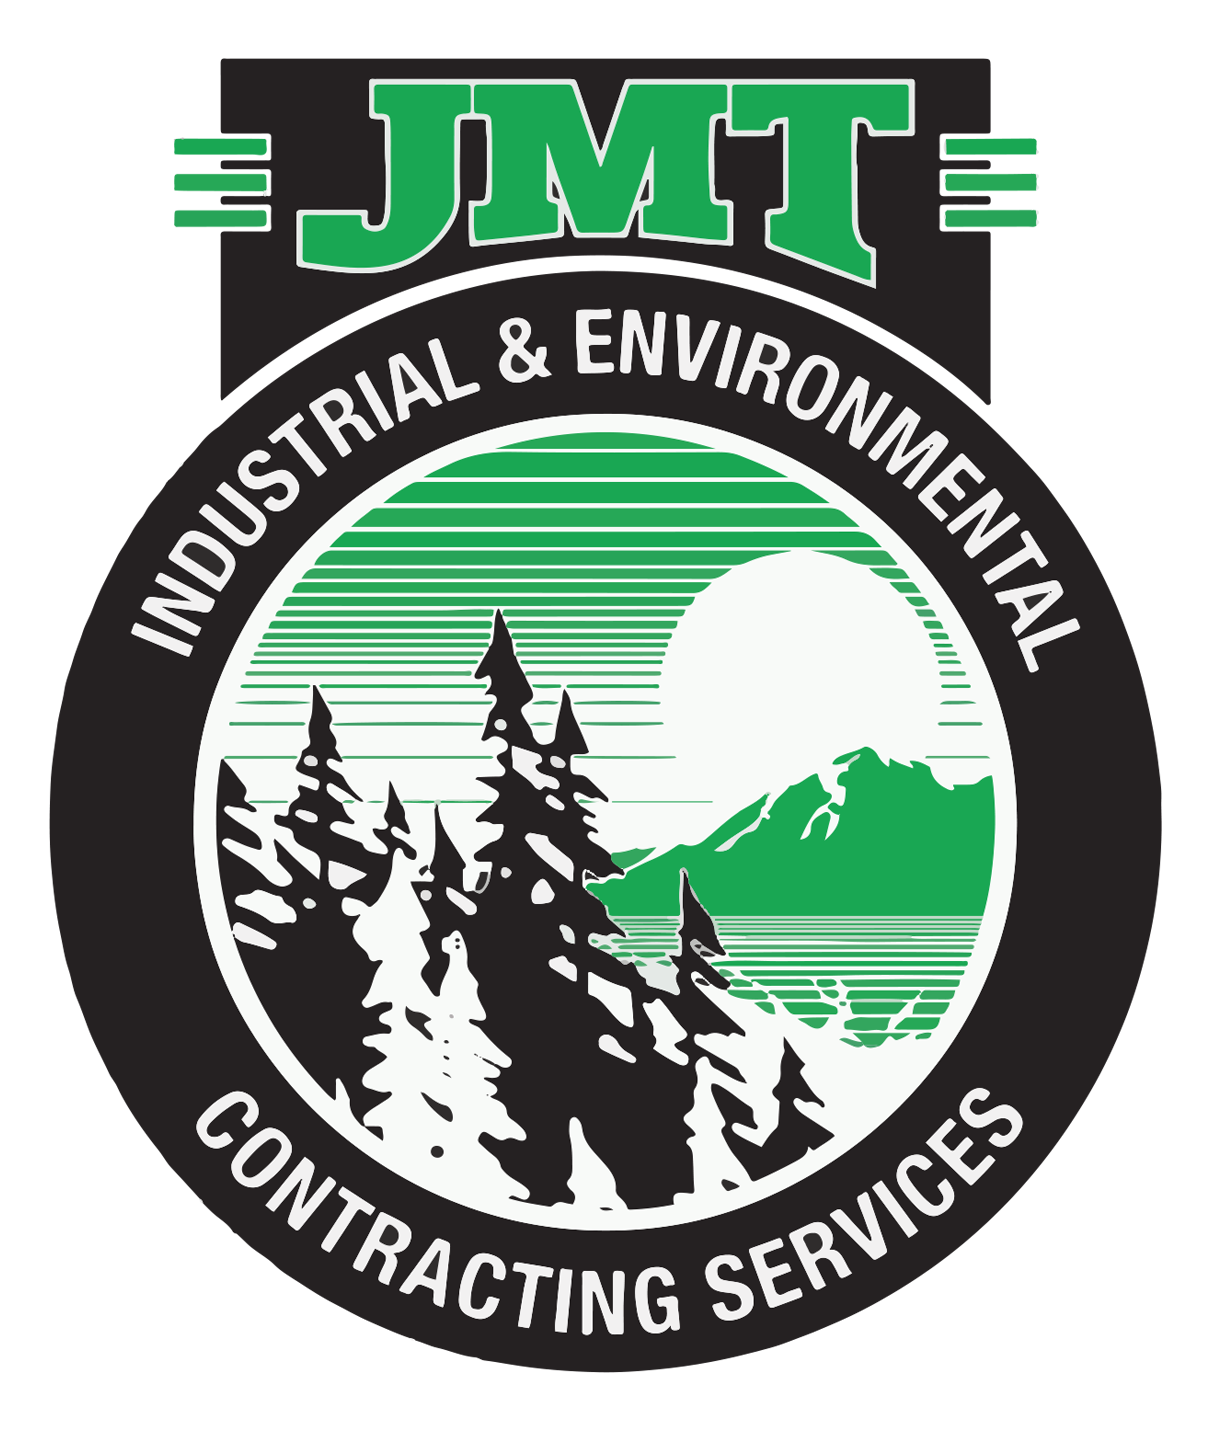 JMT Environmental Technologies, Inc.